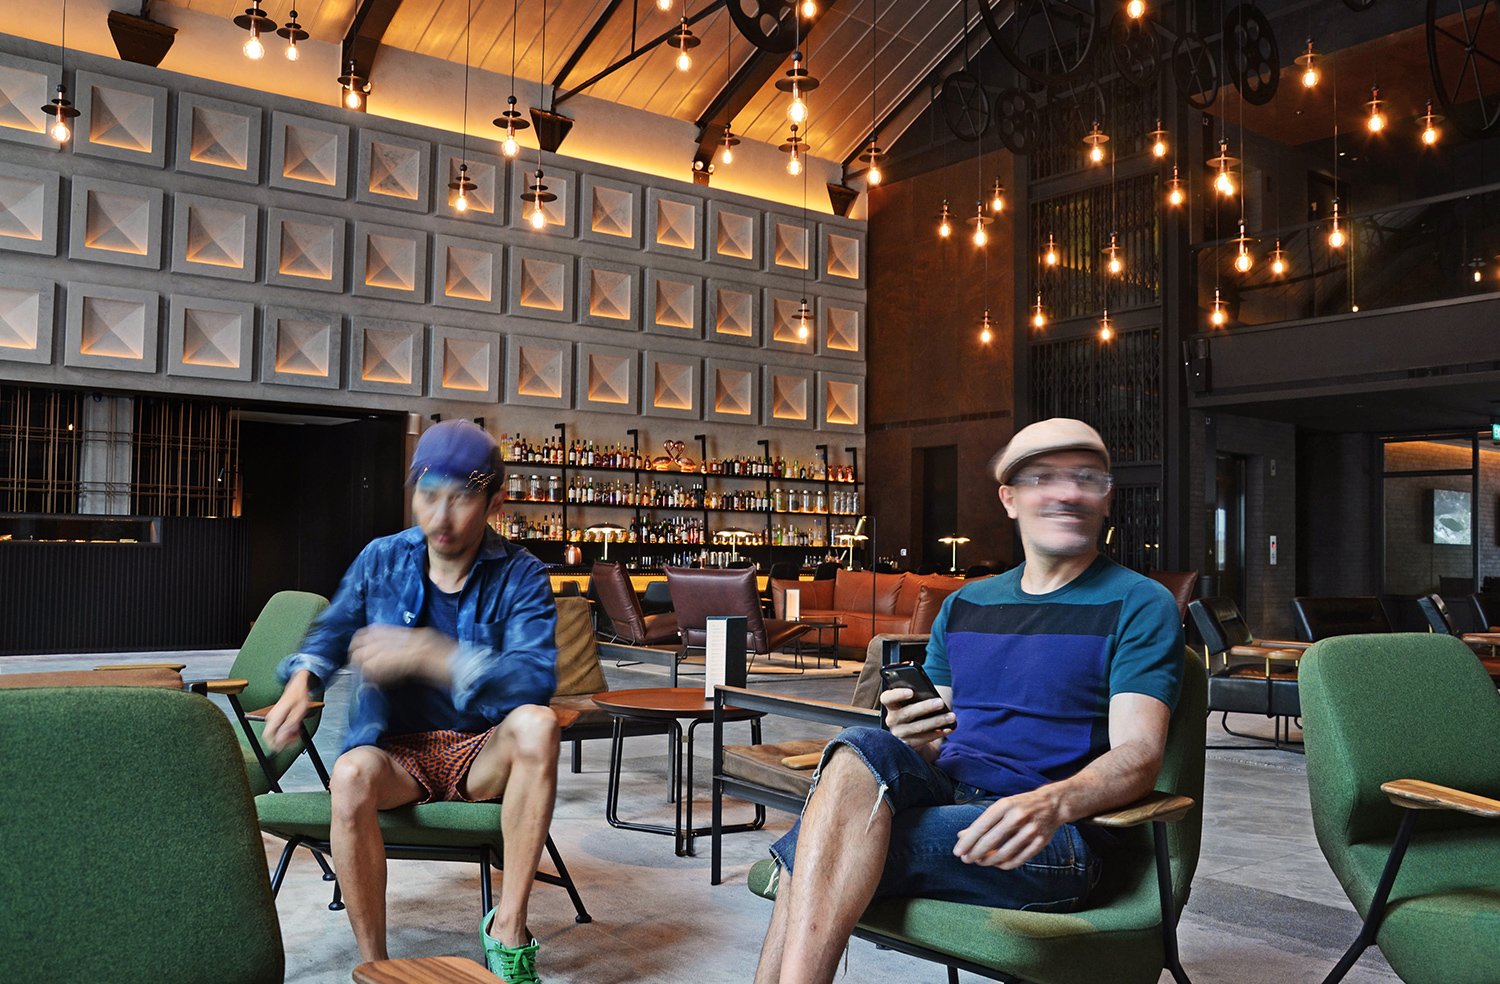 The Warehouse Hotel: Where To Stay In Singapore